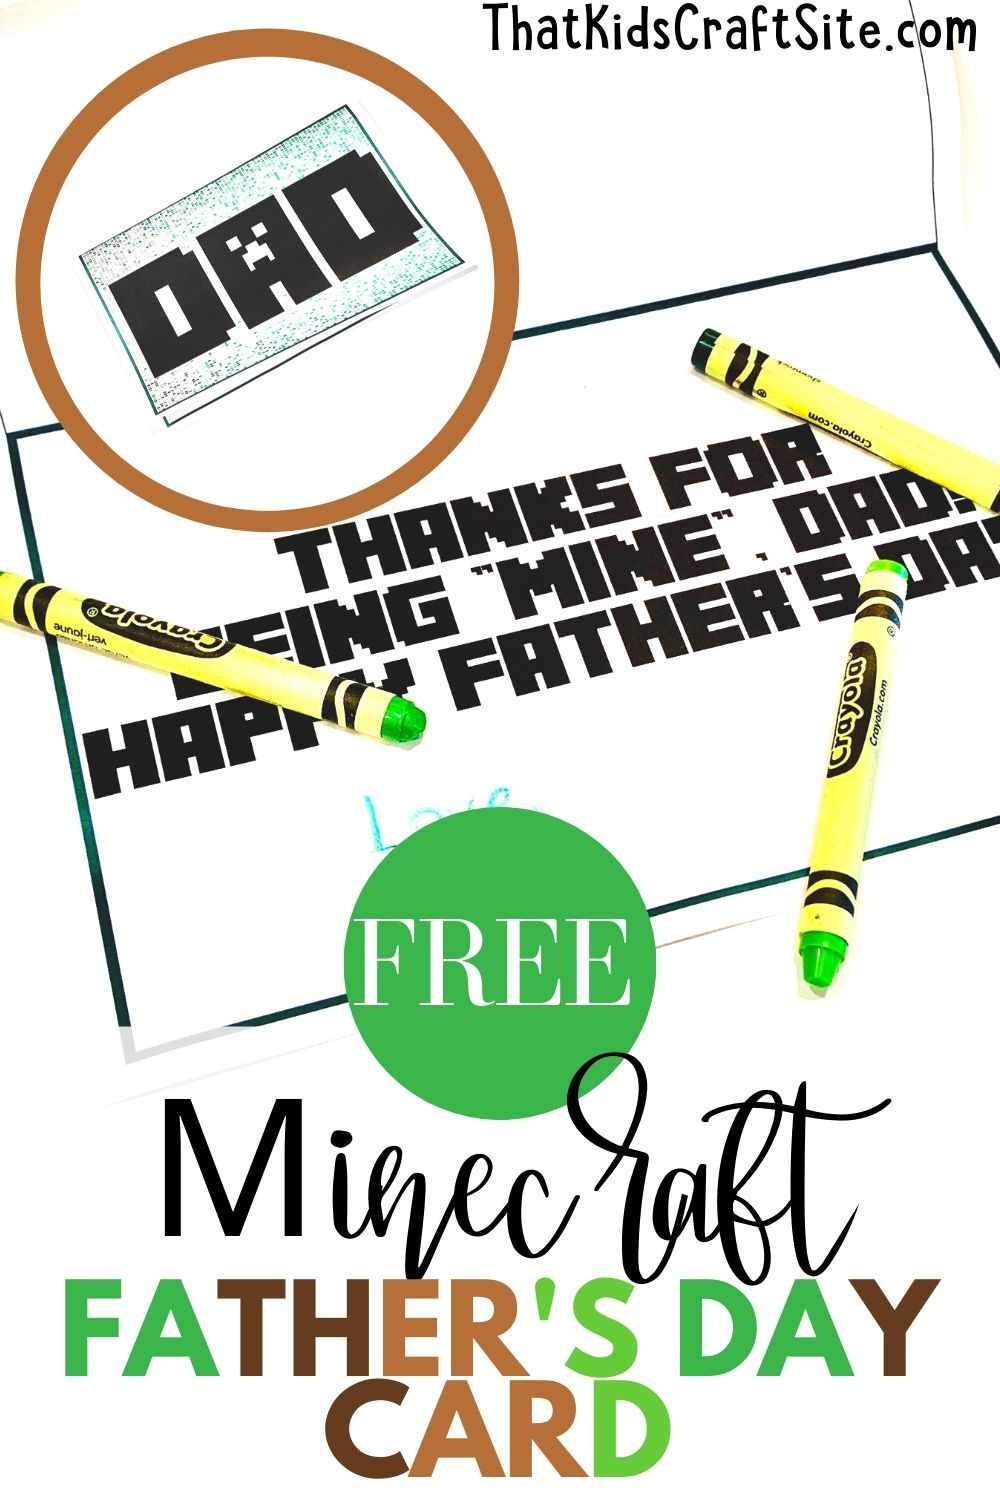 Free Minecraft Father's Day Card for Kids from That Kids' Craft Site